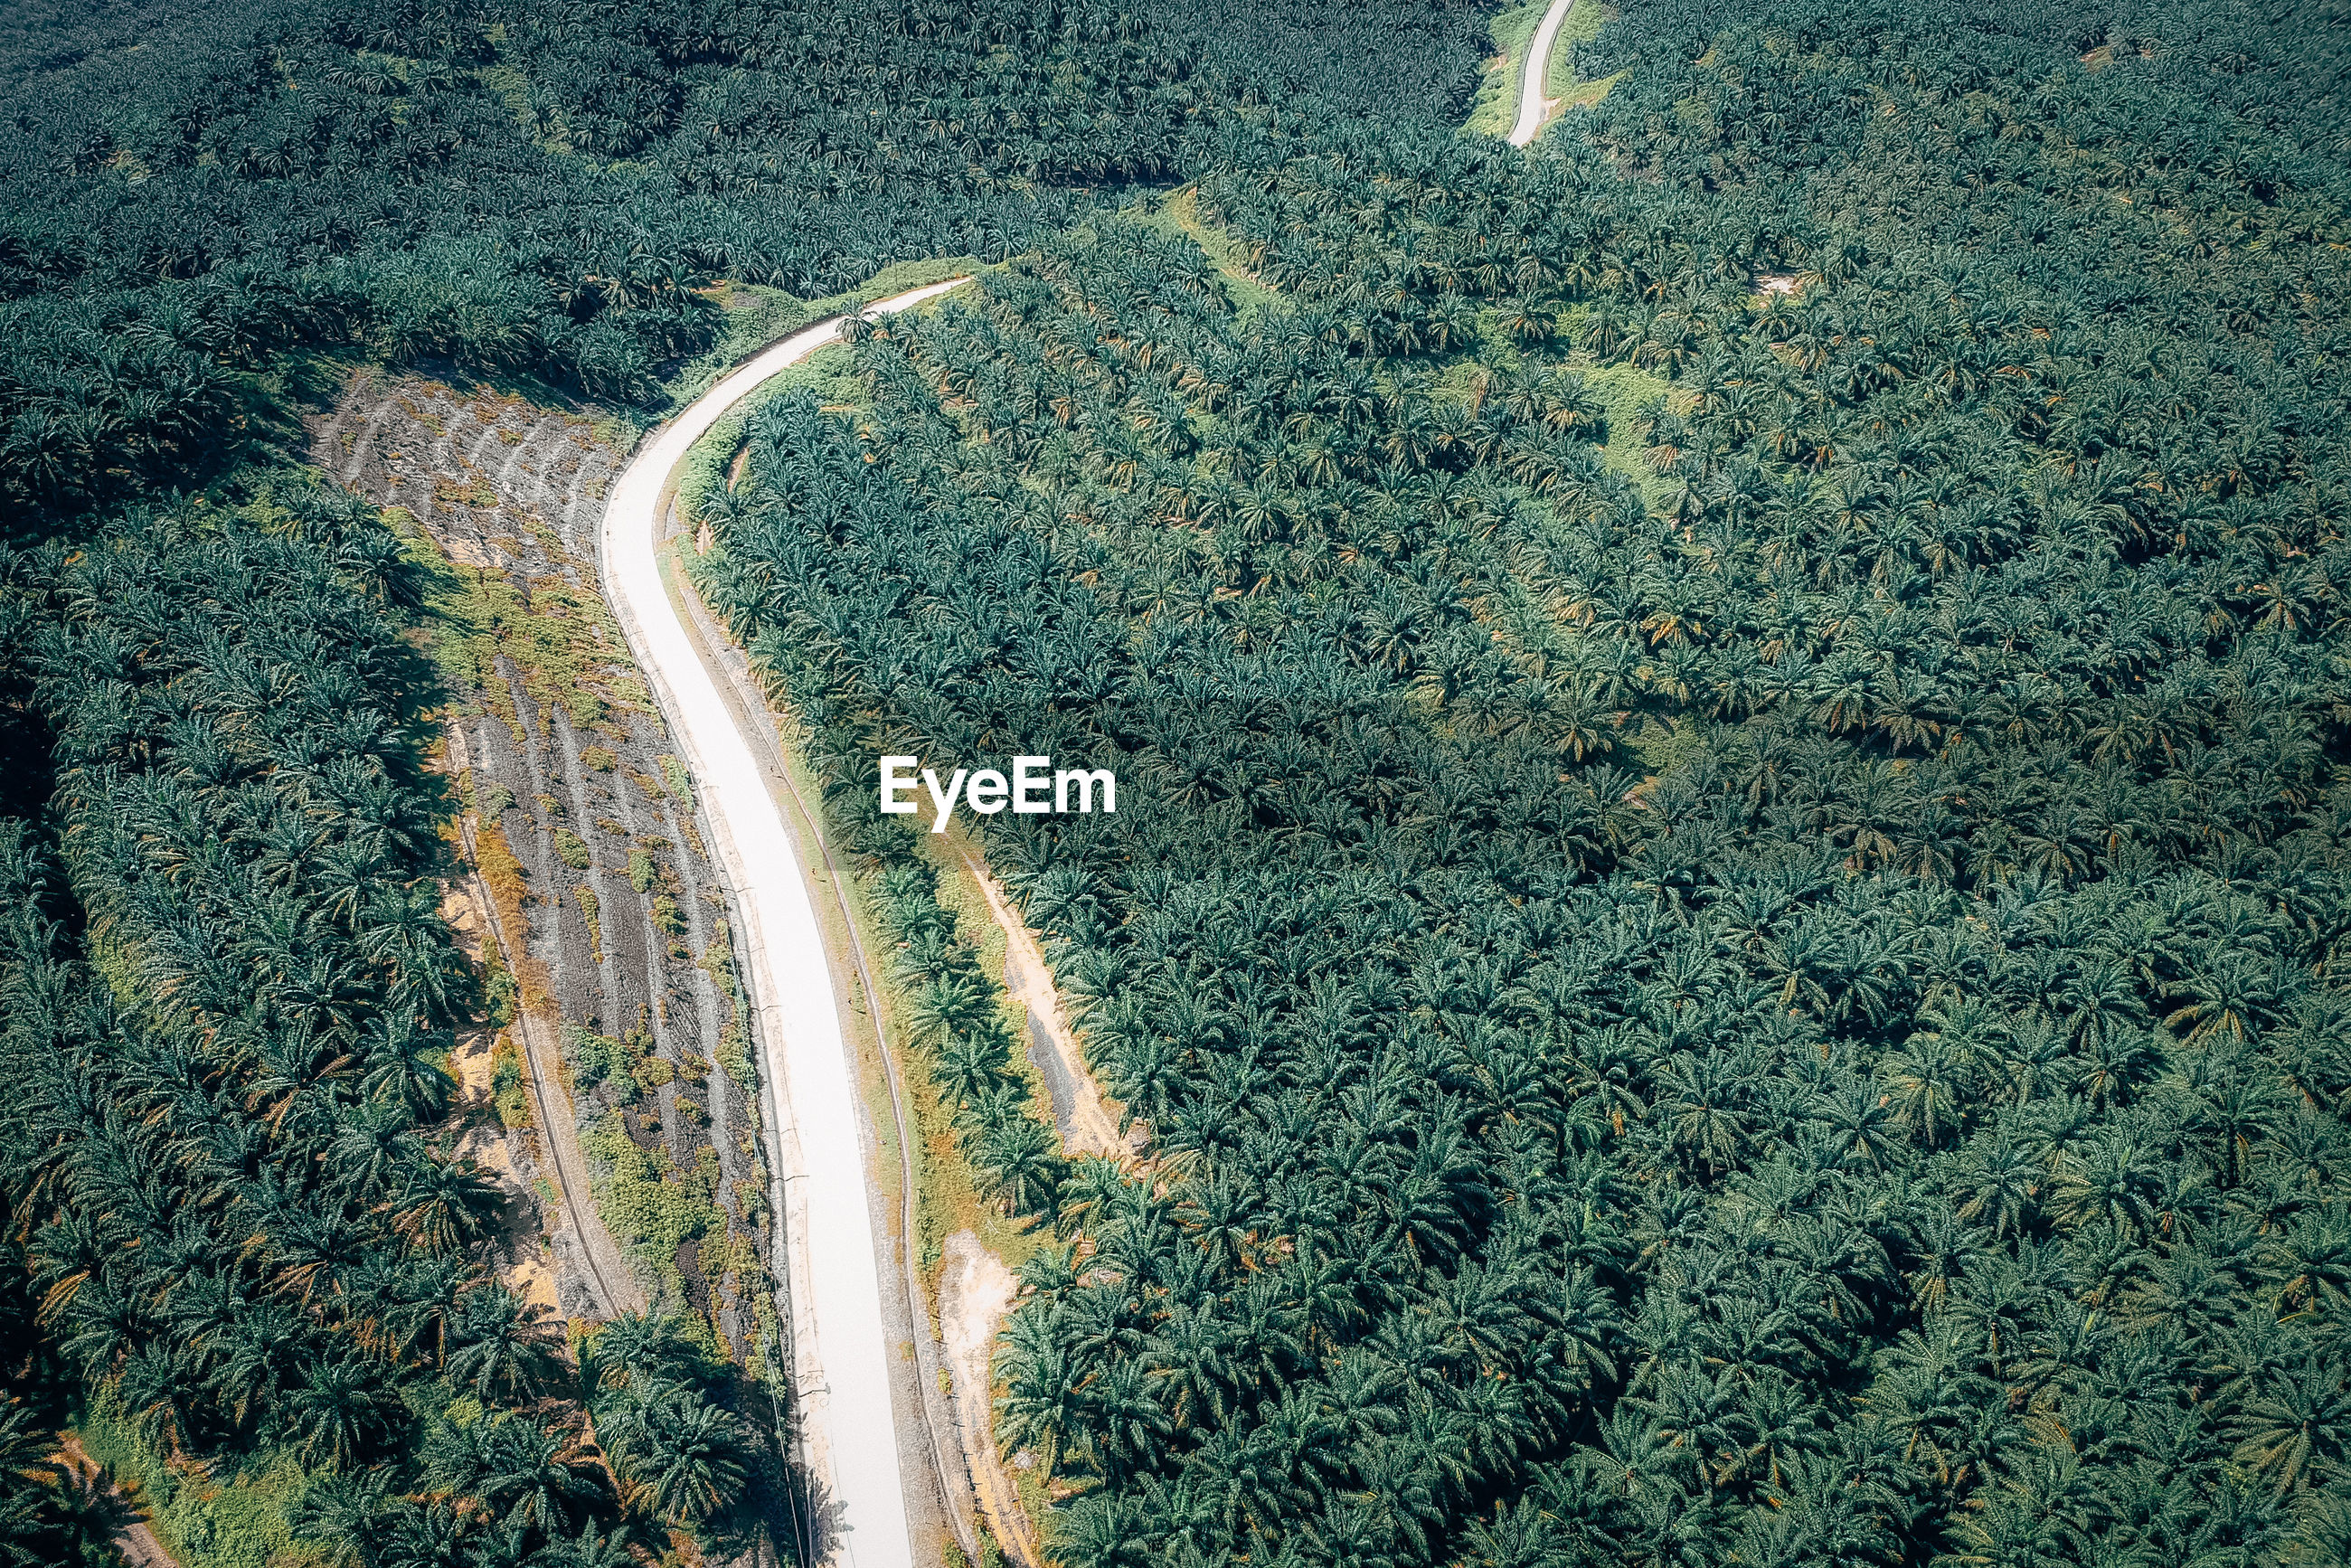 HIGH ANGLE VIEW OF ROAD AGAINST TREES